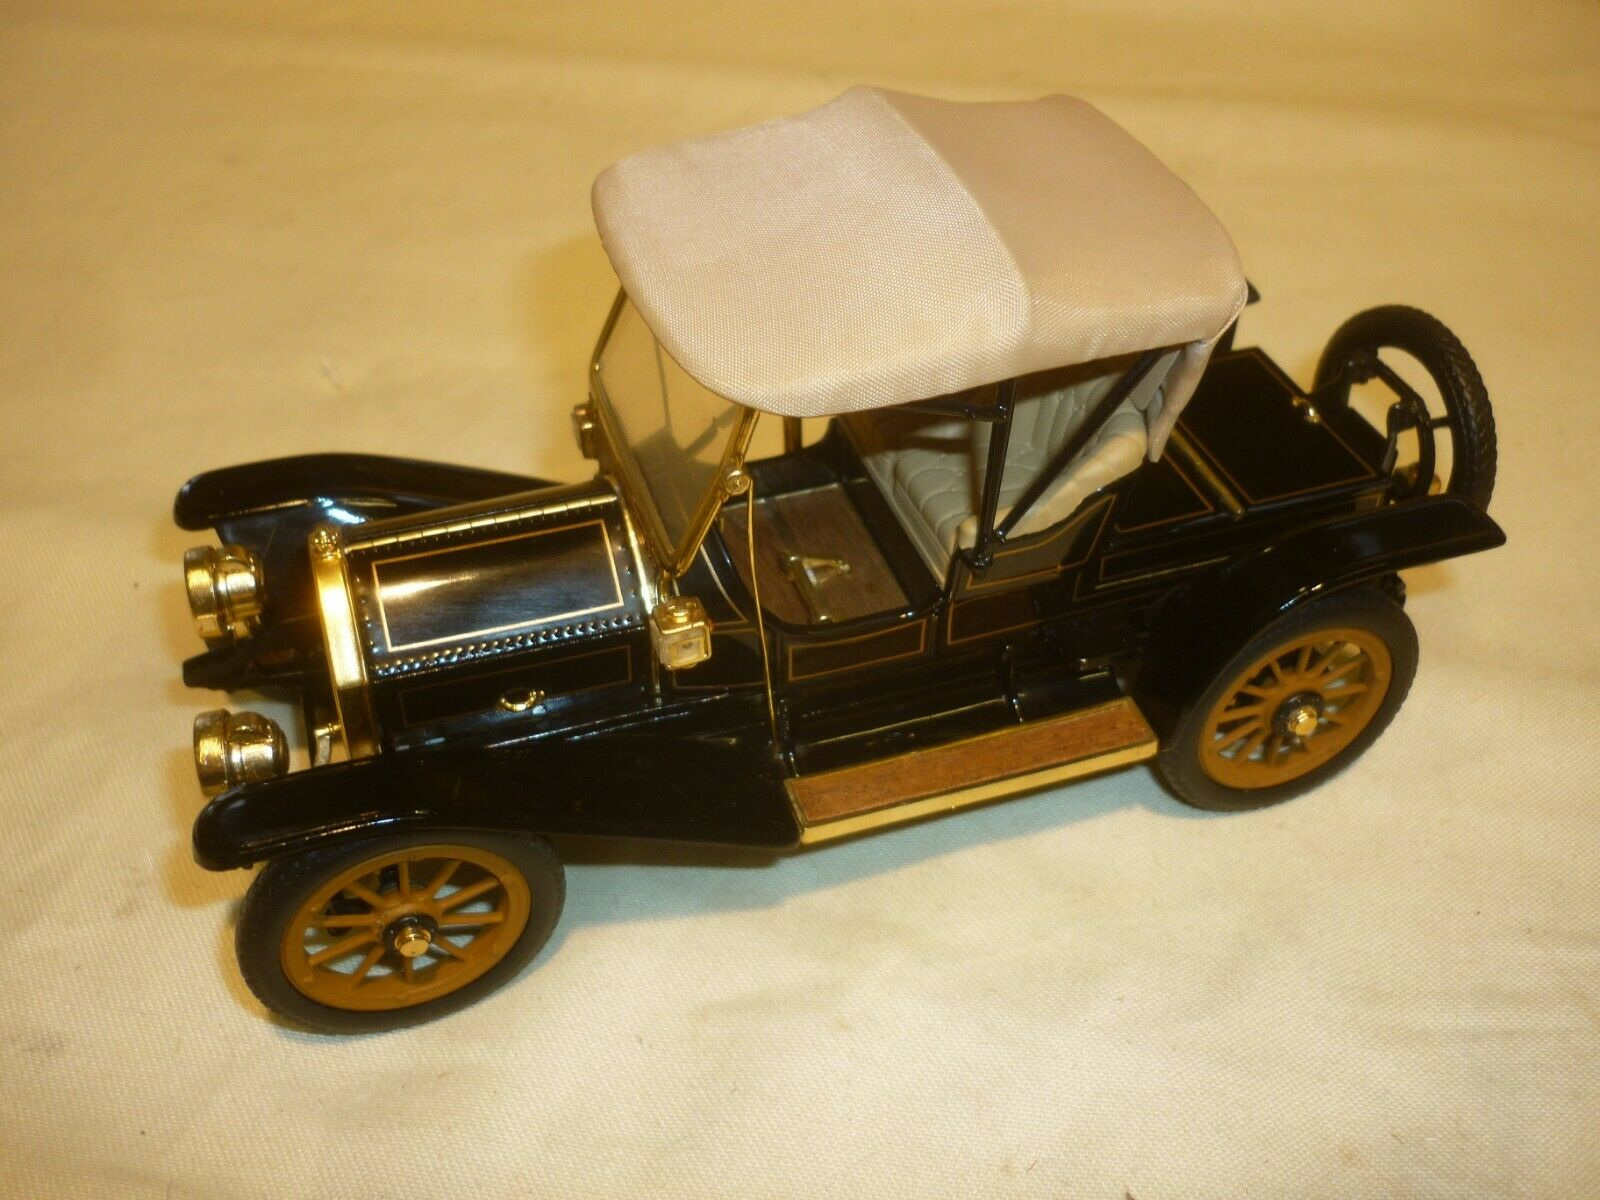 A Franklin mint scale model car of a 1910 Cadillac model Thirty Roadster,